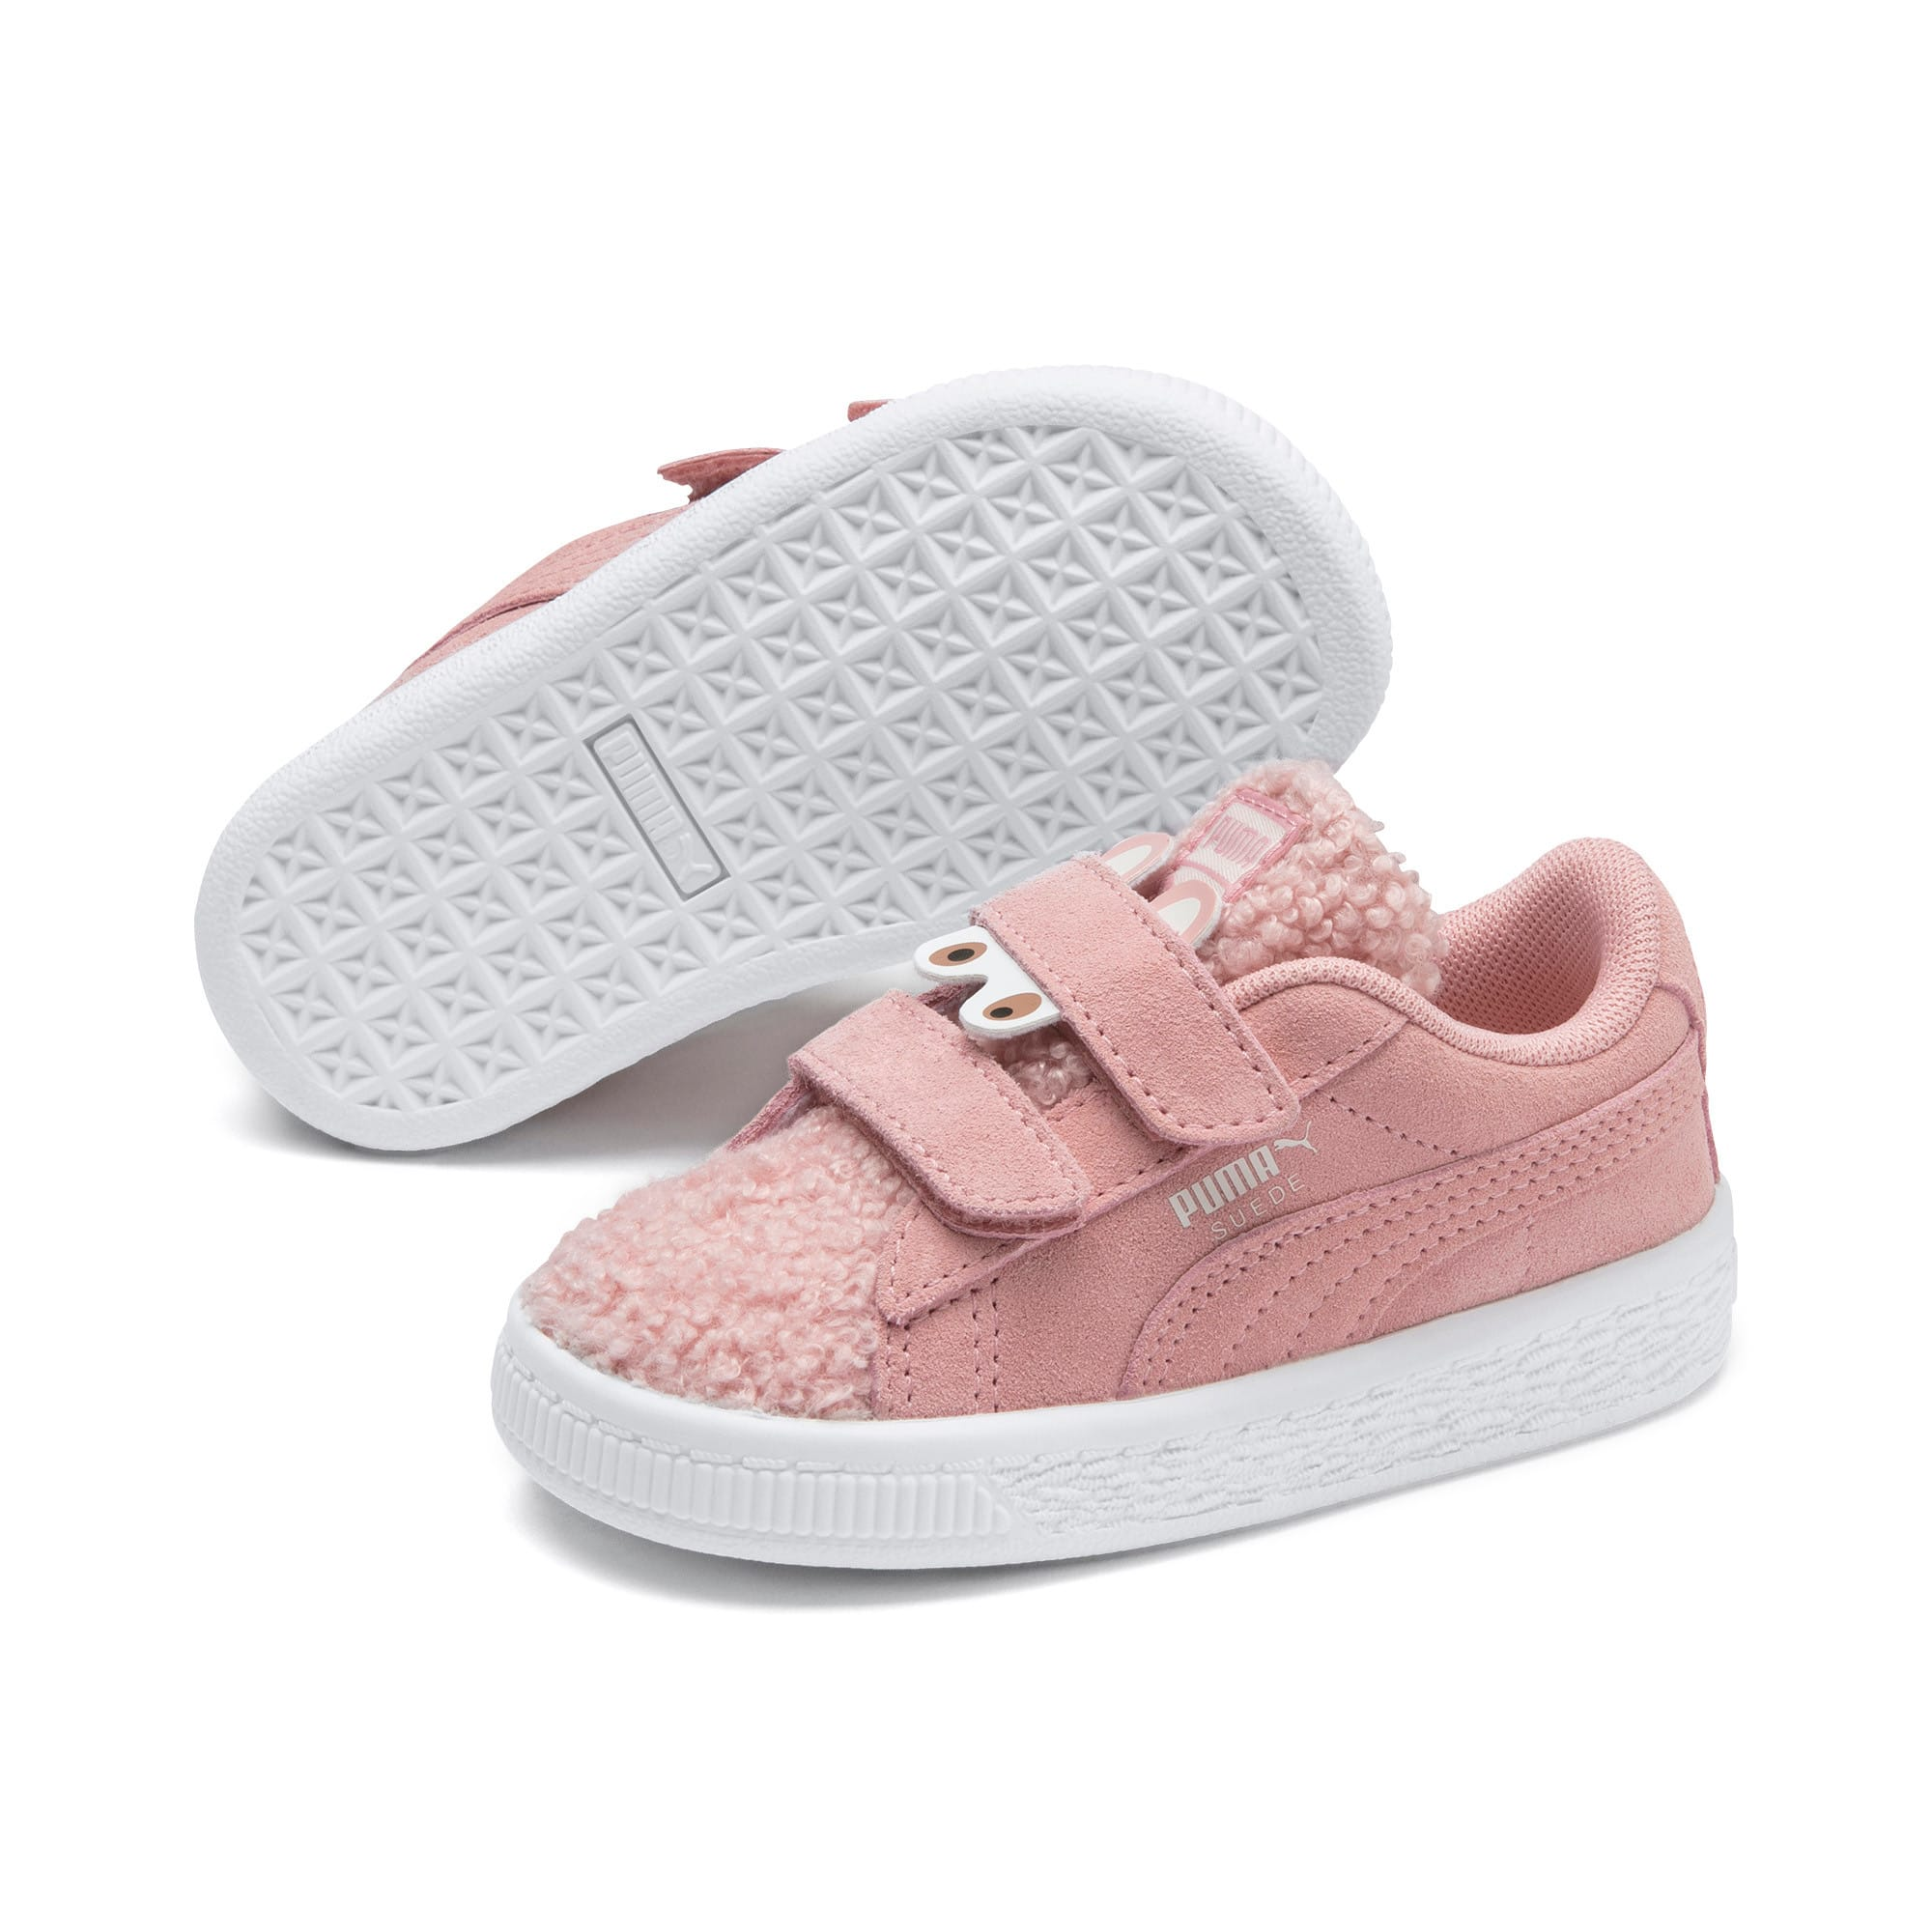 Thumbnail 2 of Suede Winter Monster Babies' Trainers, Bridal Rose-Mocha Mousse, medium